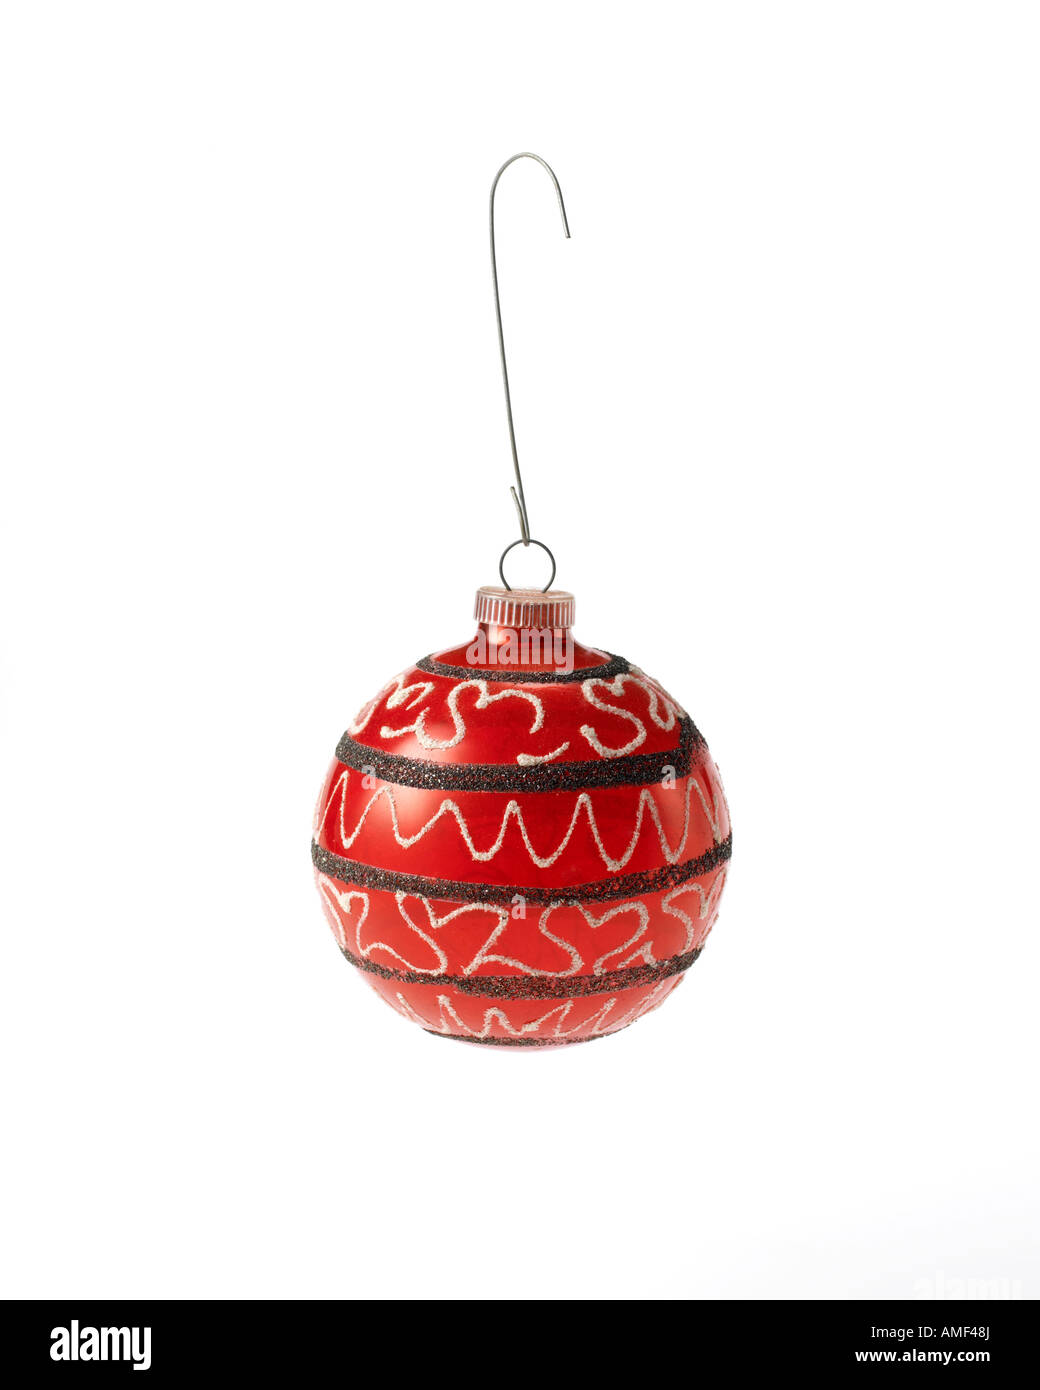 Stock Photo  Red Vintage Christmas Ornament Ball With Gold Glitter Hanging  On Hook